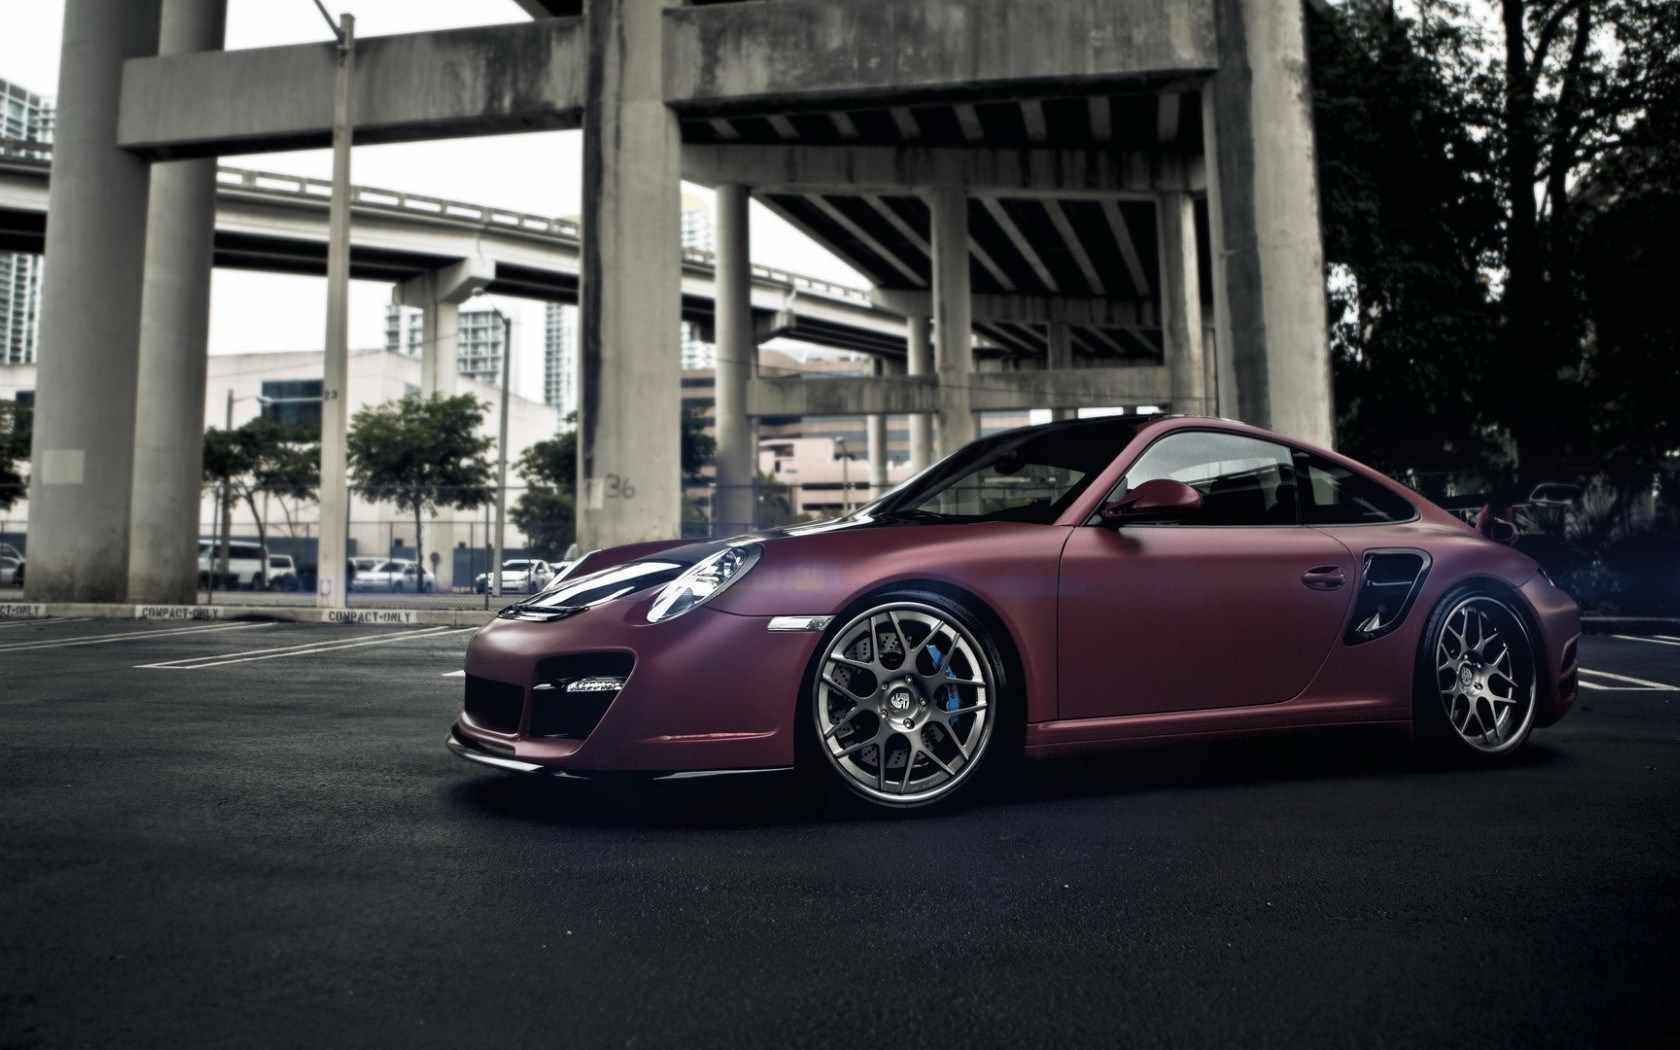 Tuned Cars Wallpaper Find best latest Tuned Cars